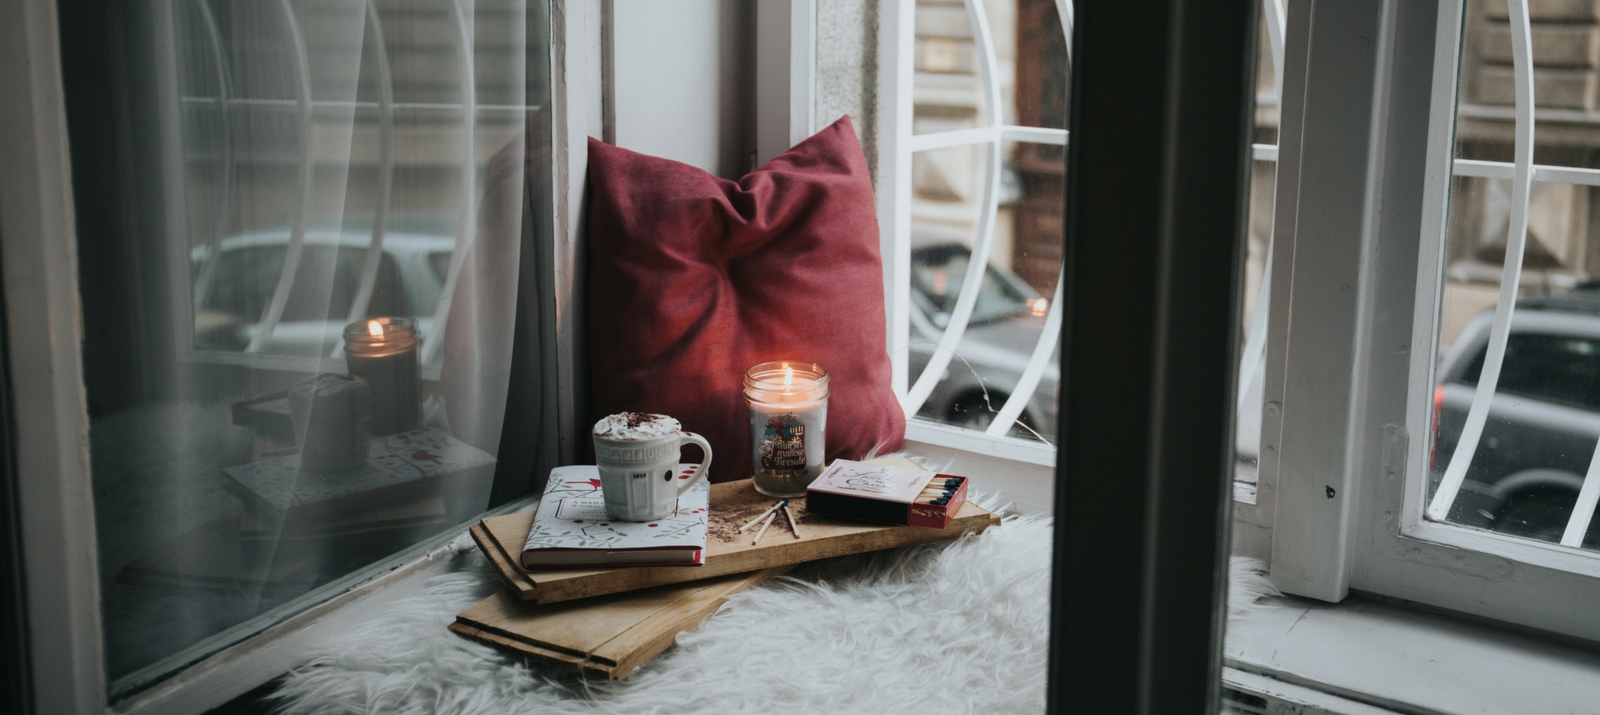 how to hygge your home and life: embrace coziness, healthy hedonism, decluttering, minimalism, and spending quality time with others